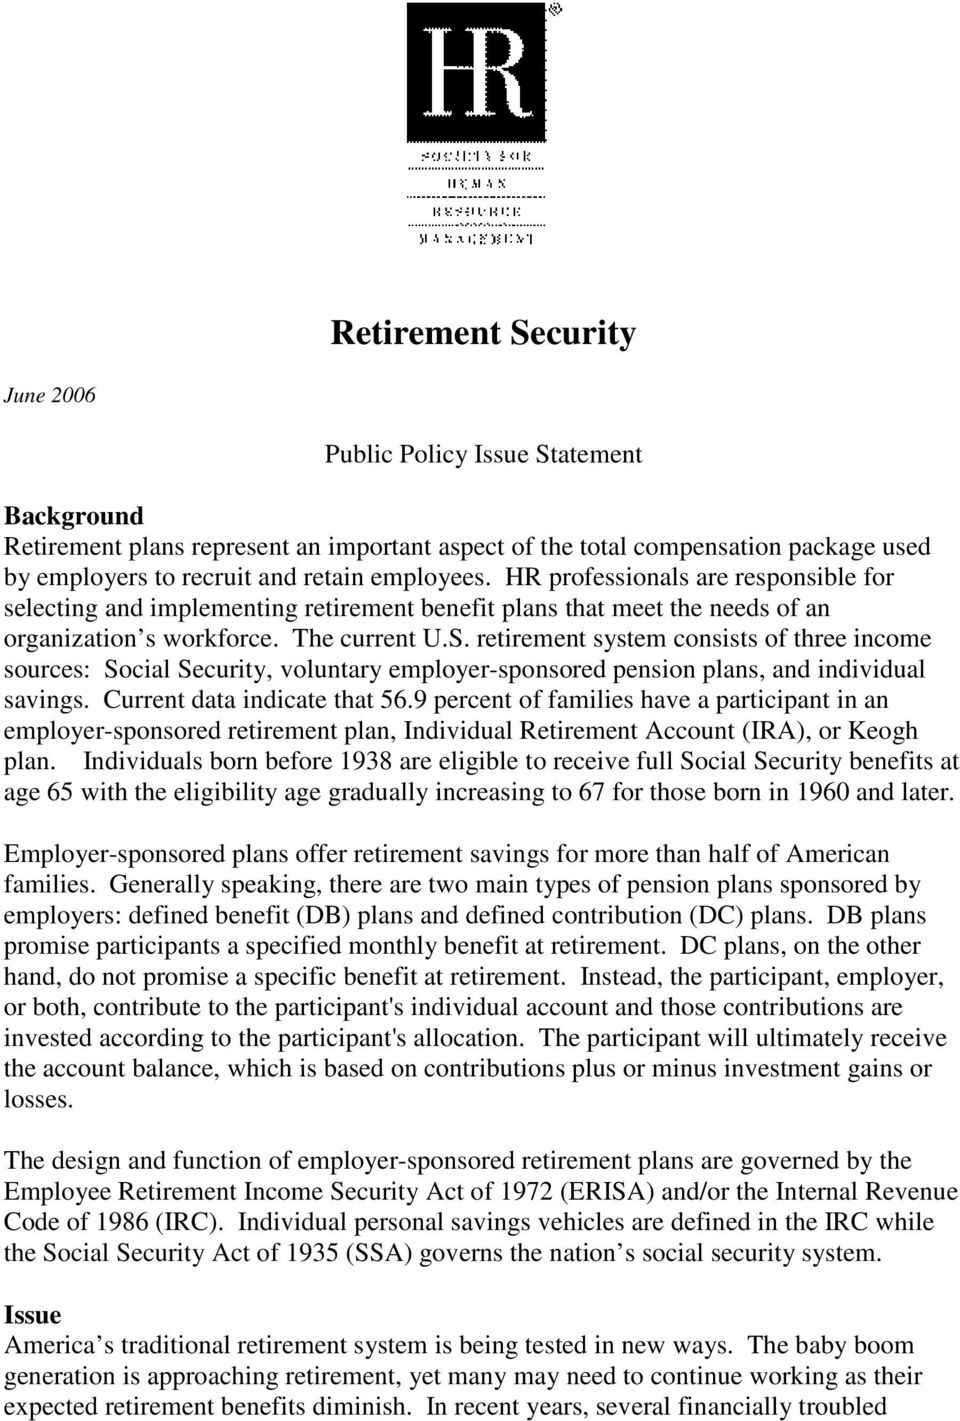 retirement system consists of three income sources: Social Security, voluntary employer-sponsored pension plans, and individual savings. Current data indicate that 56.